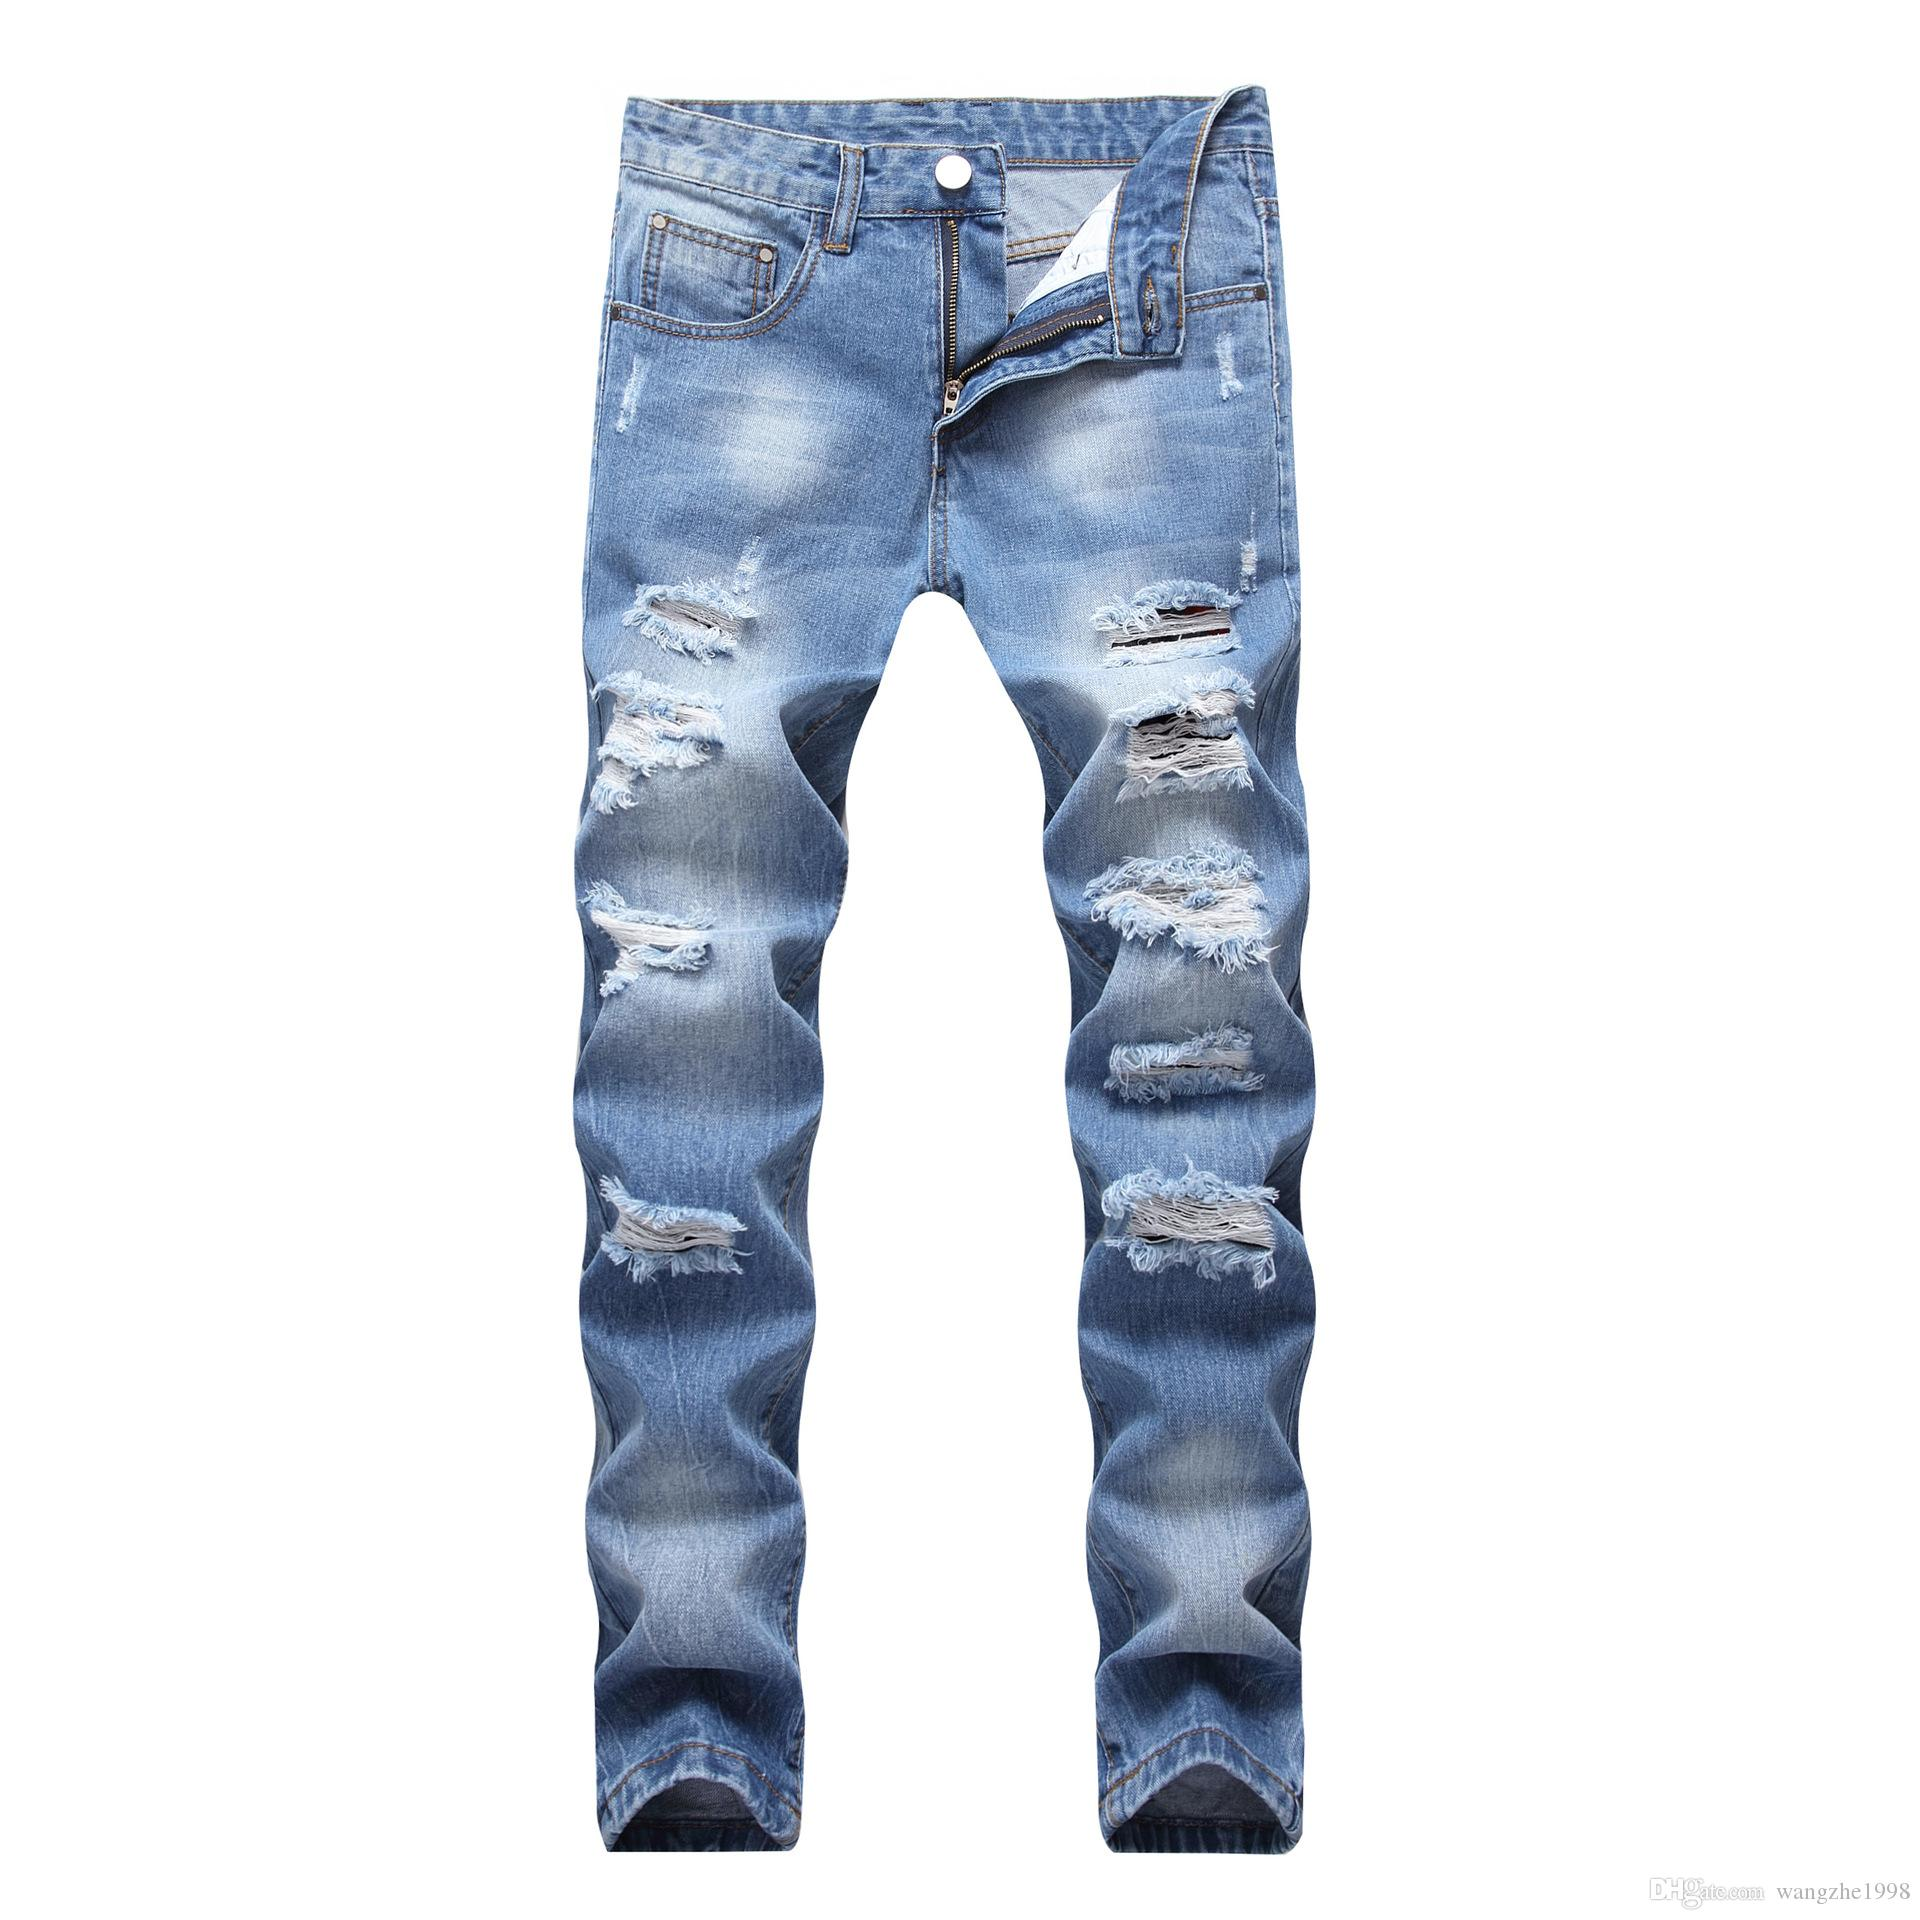 Fashion Mens Spring Straight Slim Fit Biker Jeans Pants Distressed Skinny Ripped Destroyed Denim Jeans Washed Hiphop Trousers Black Blue